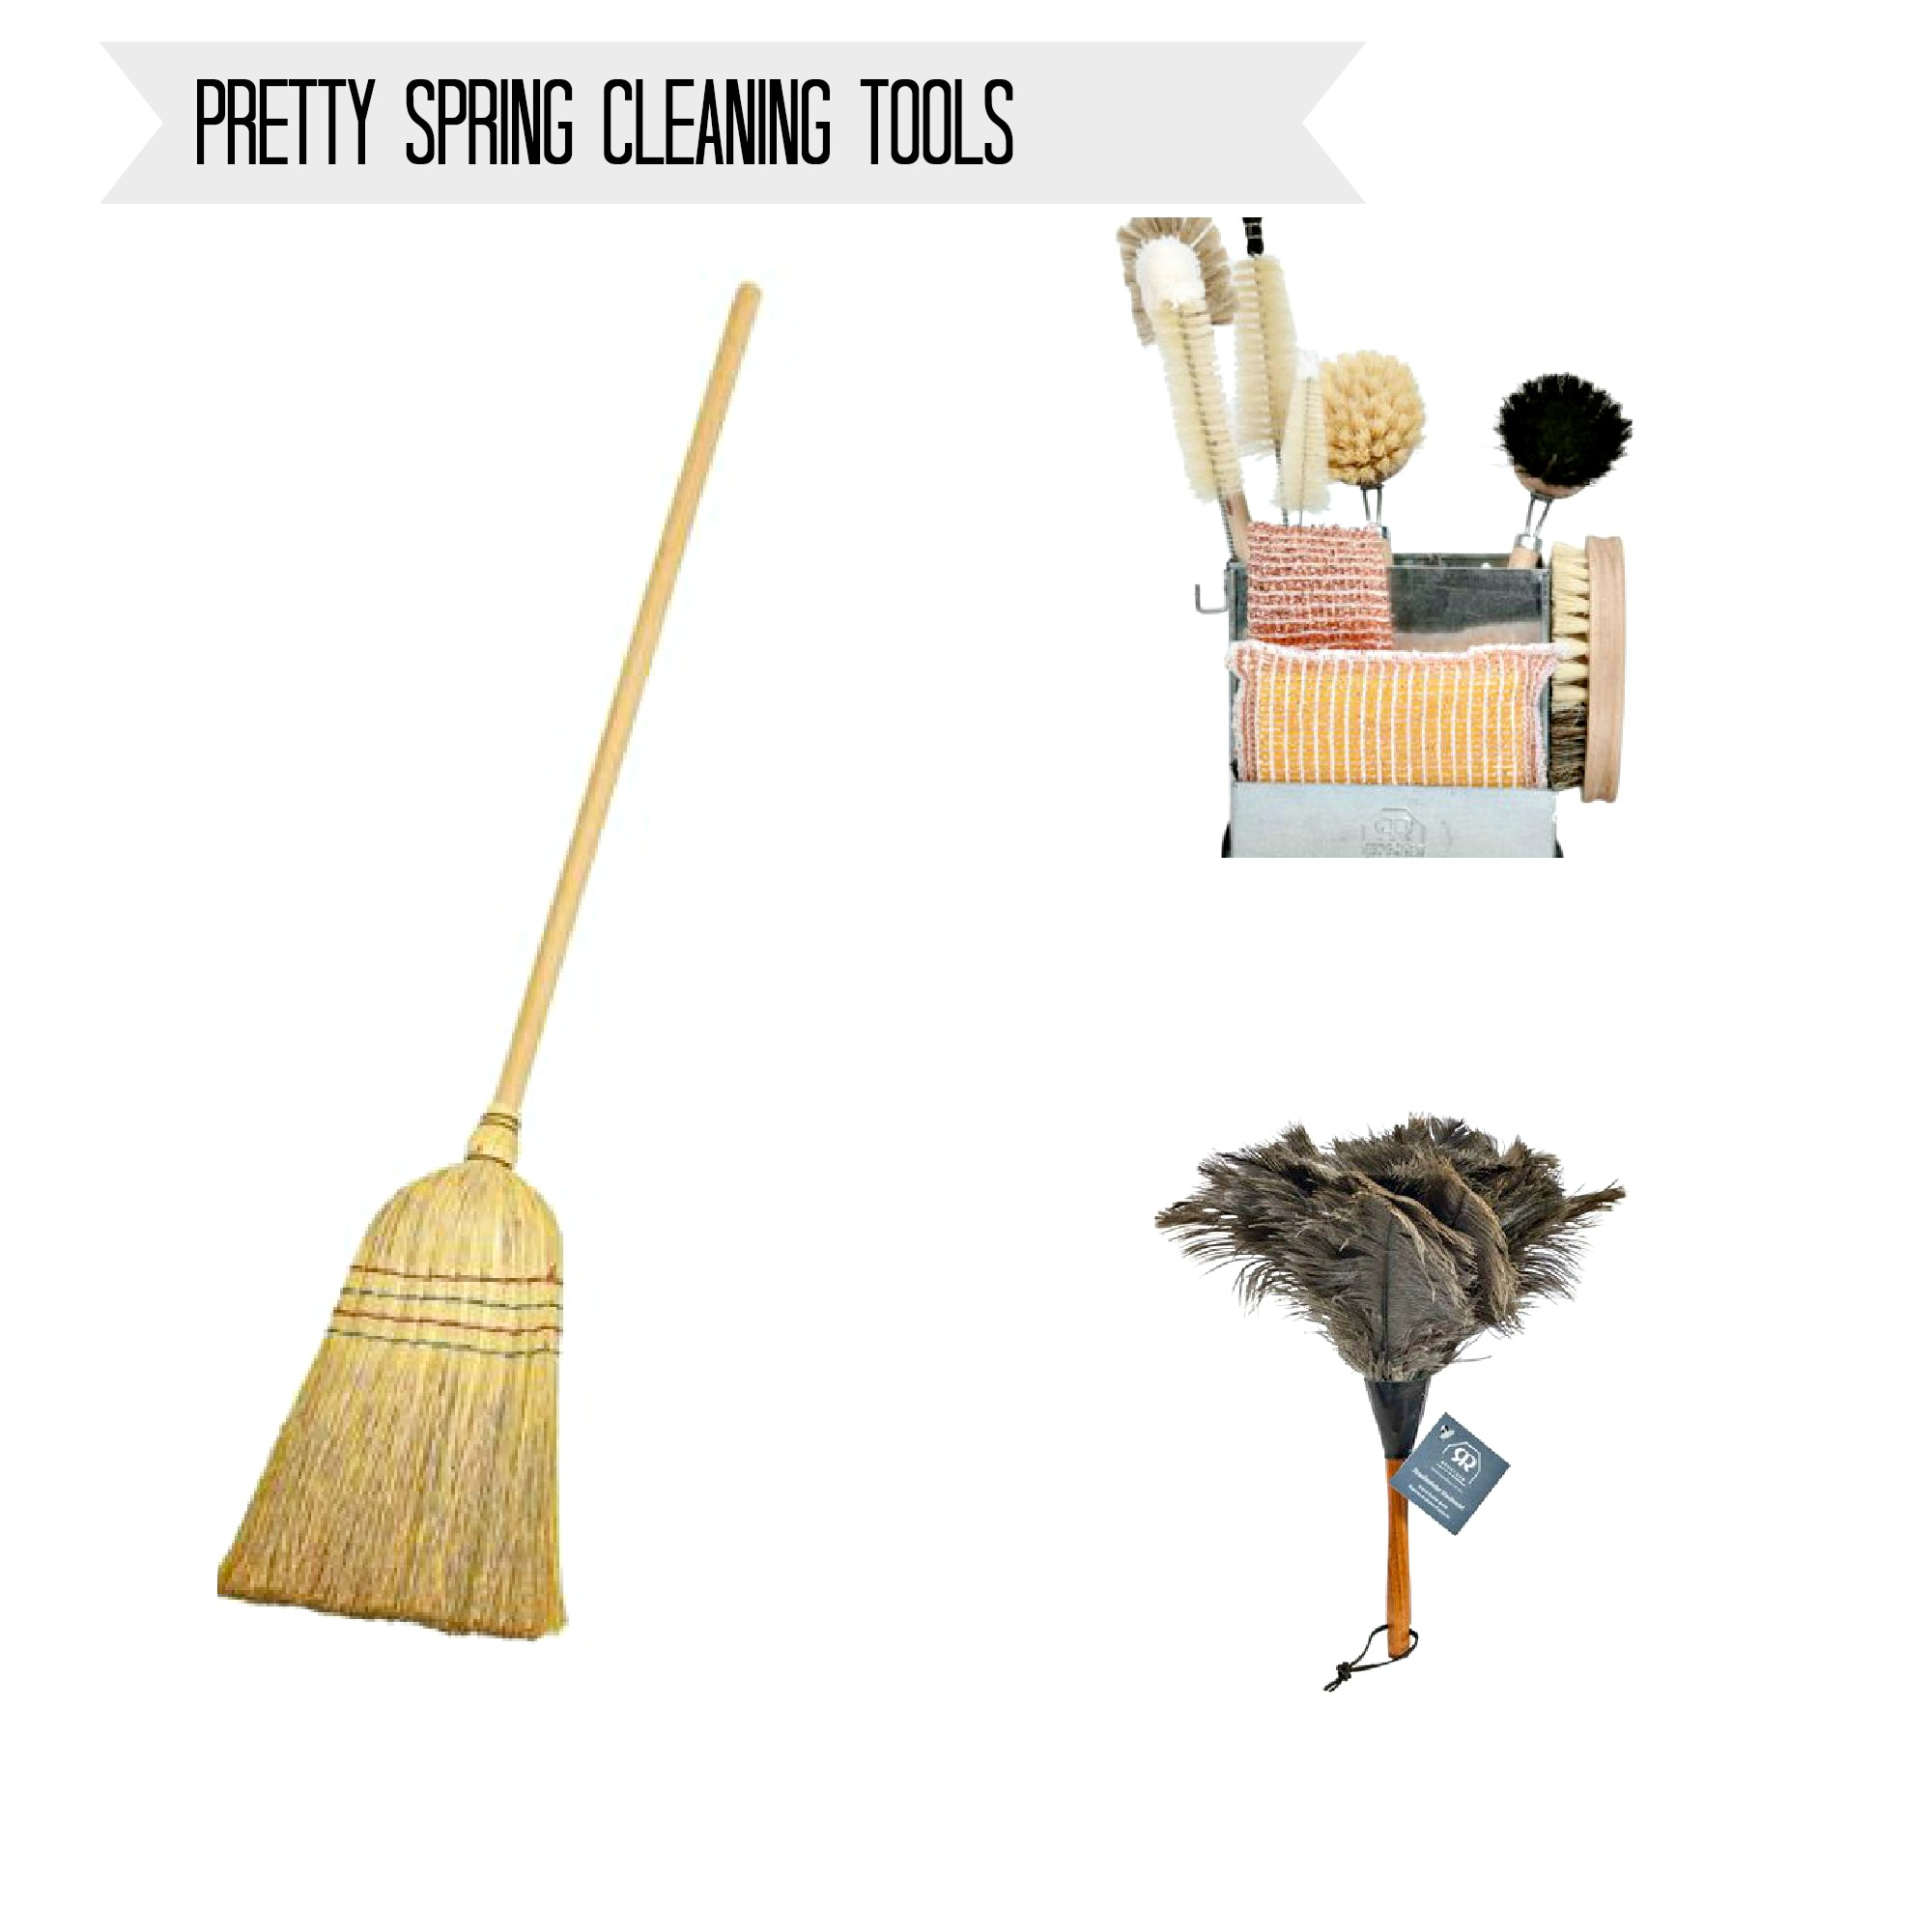 Homemaking Tools for your home